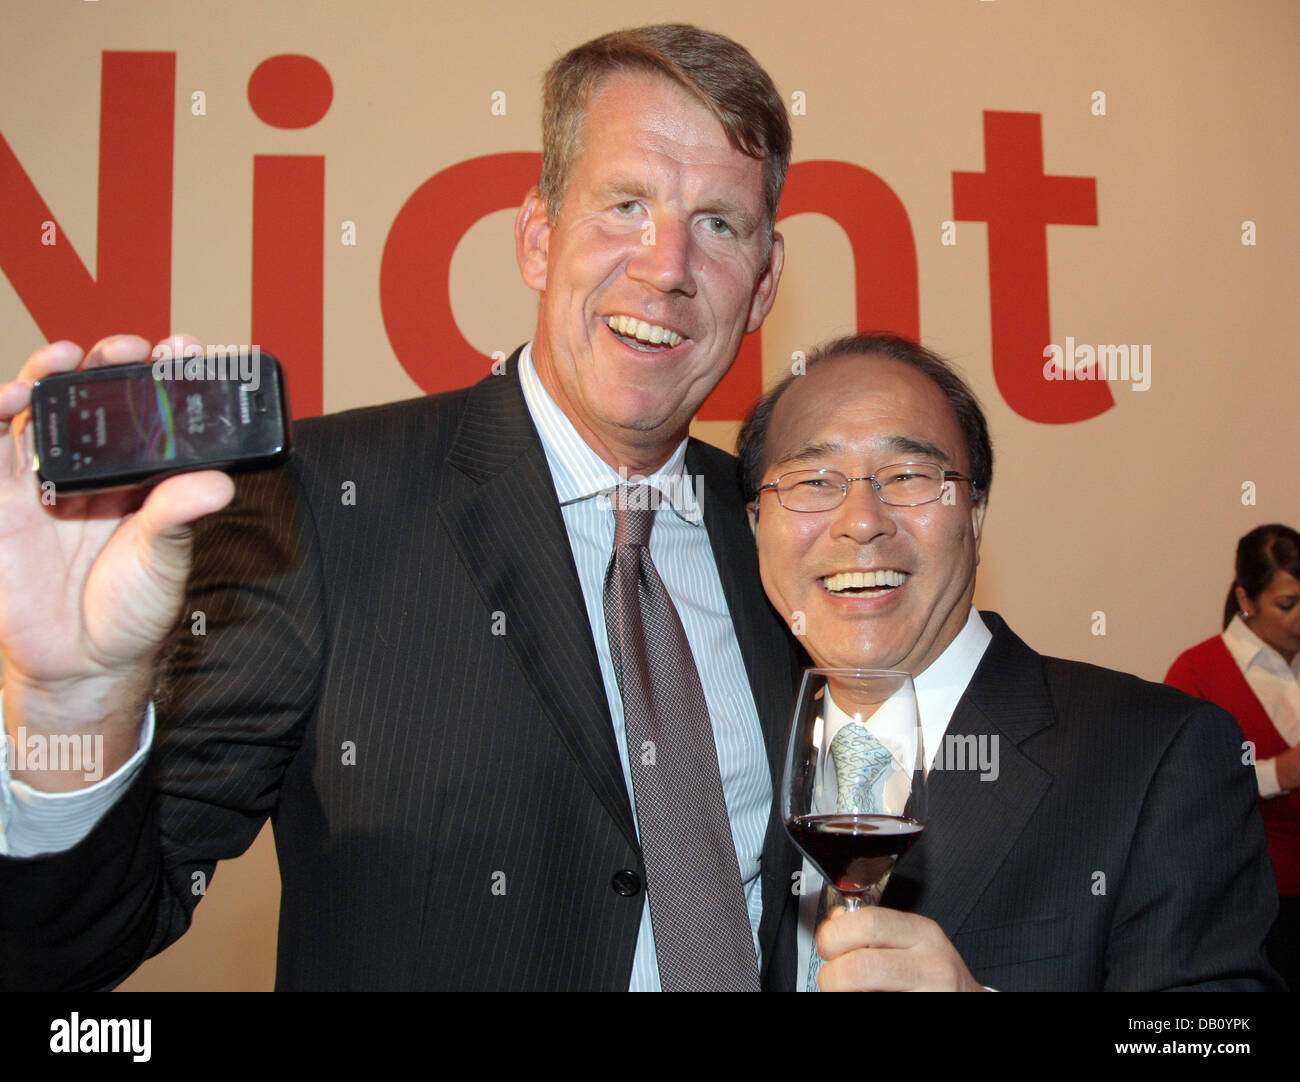 The CEO of Vodafone Germany Friedrich Joussen (L) and his counterpart of Samsung Germany Seung Kak Kang present - Stock Image